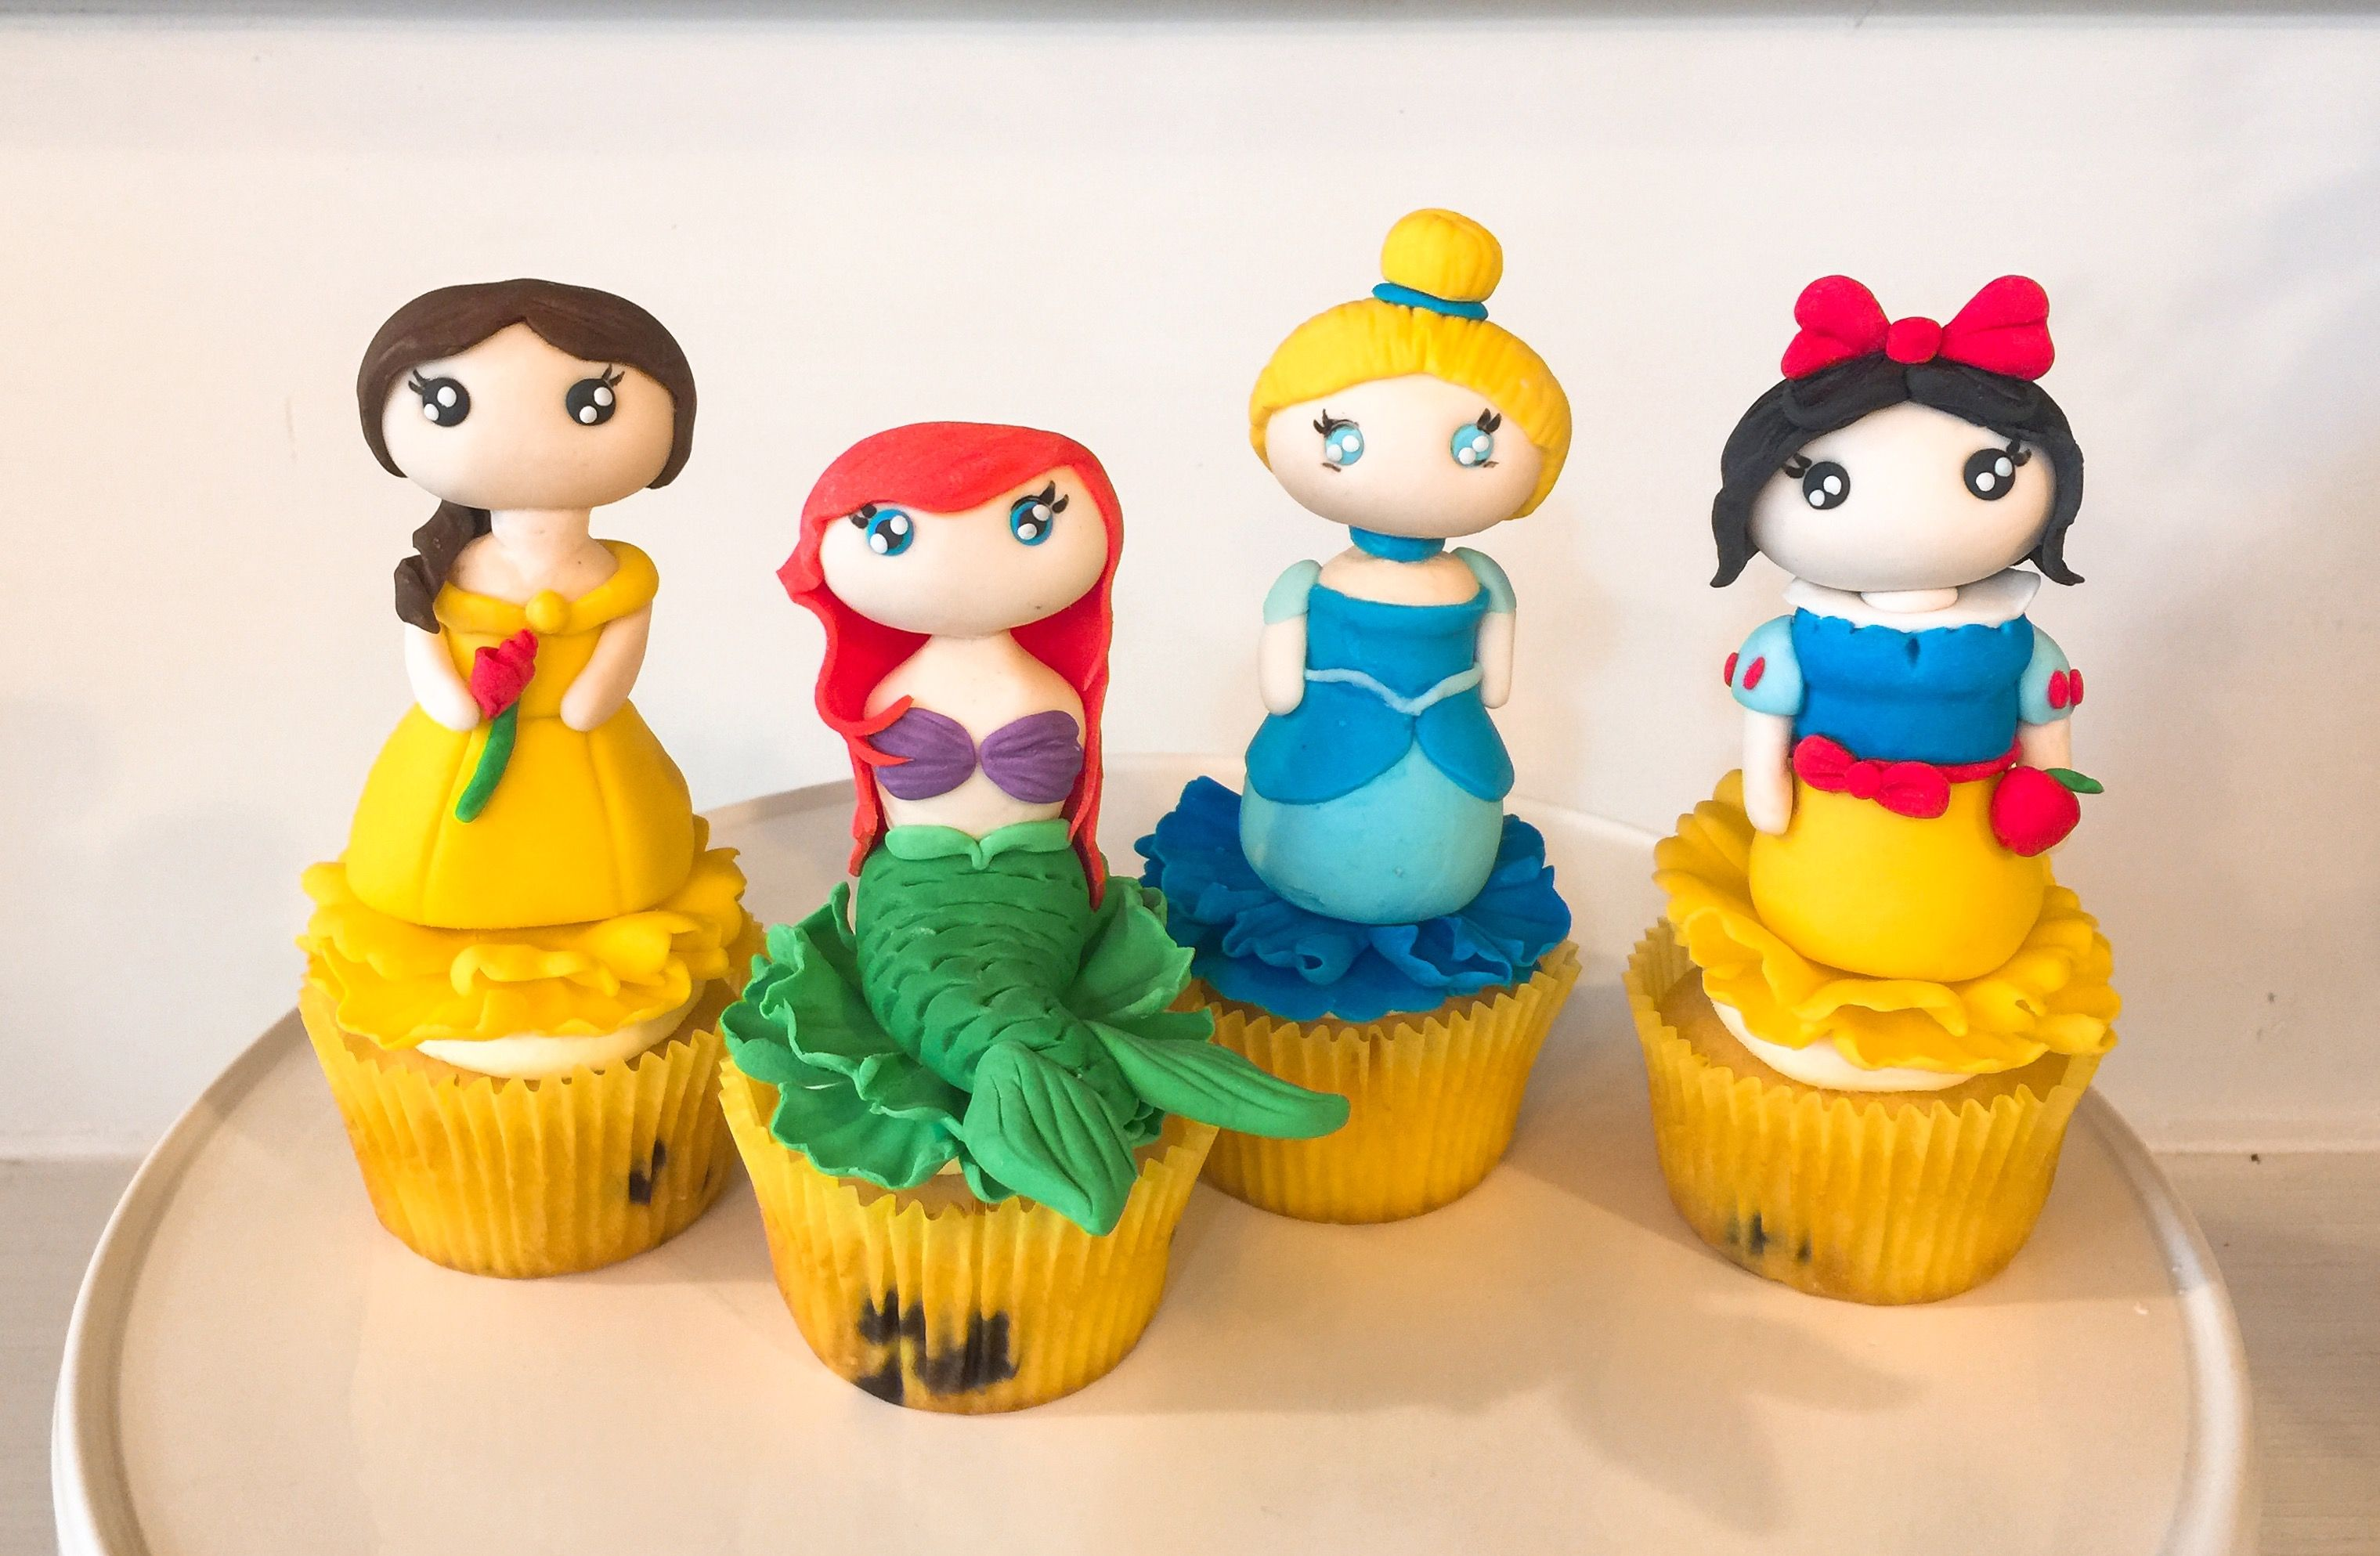 Fondant Disney Princess Figurines Cupcake Toppers Fondant